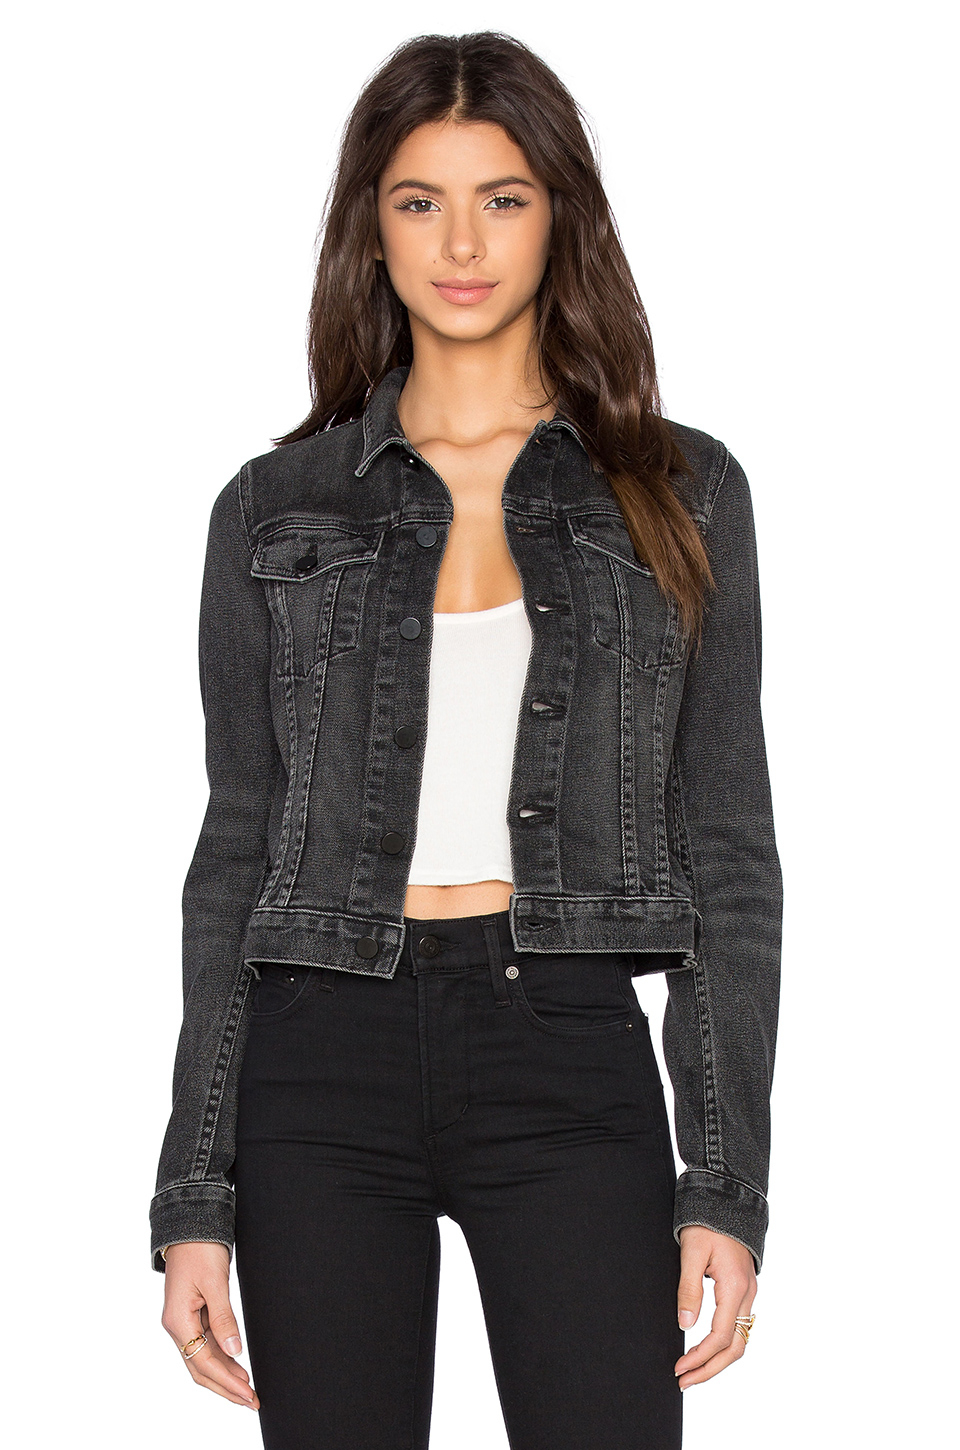 Alexander wang Axle Cropped Denim Jacket in Black | Lyst